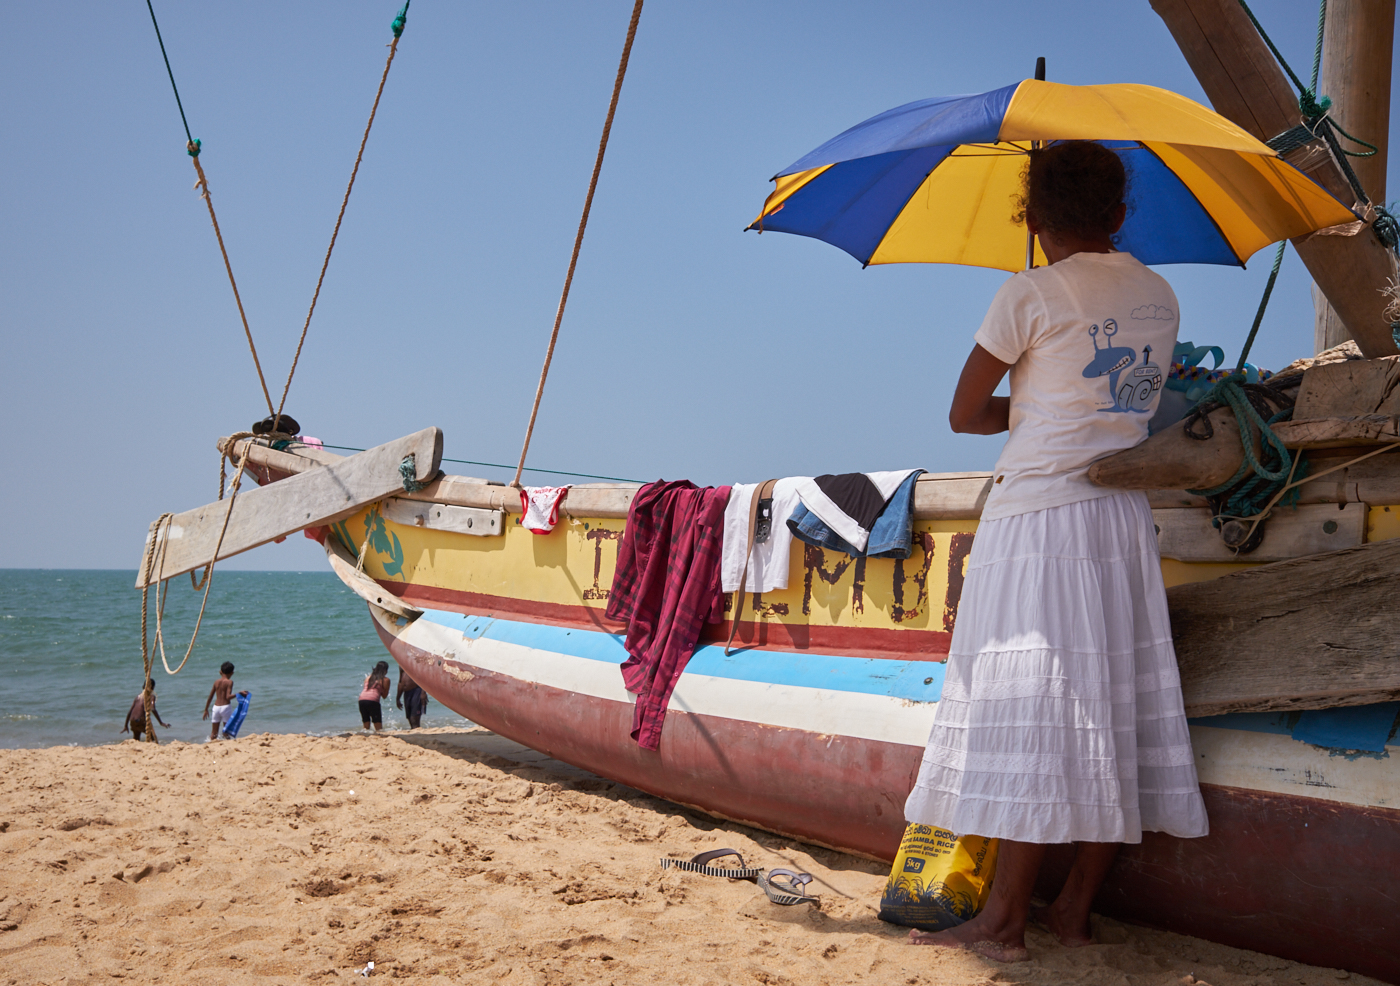 Beach umbrella Negombo.jpg